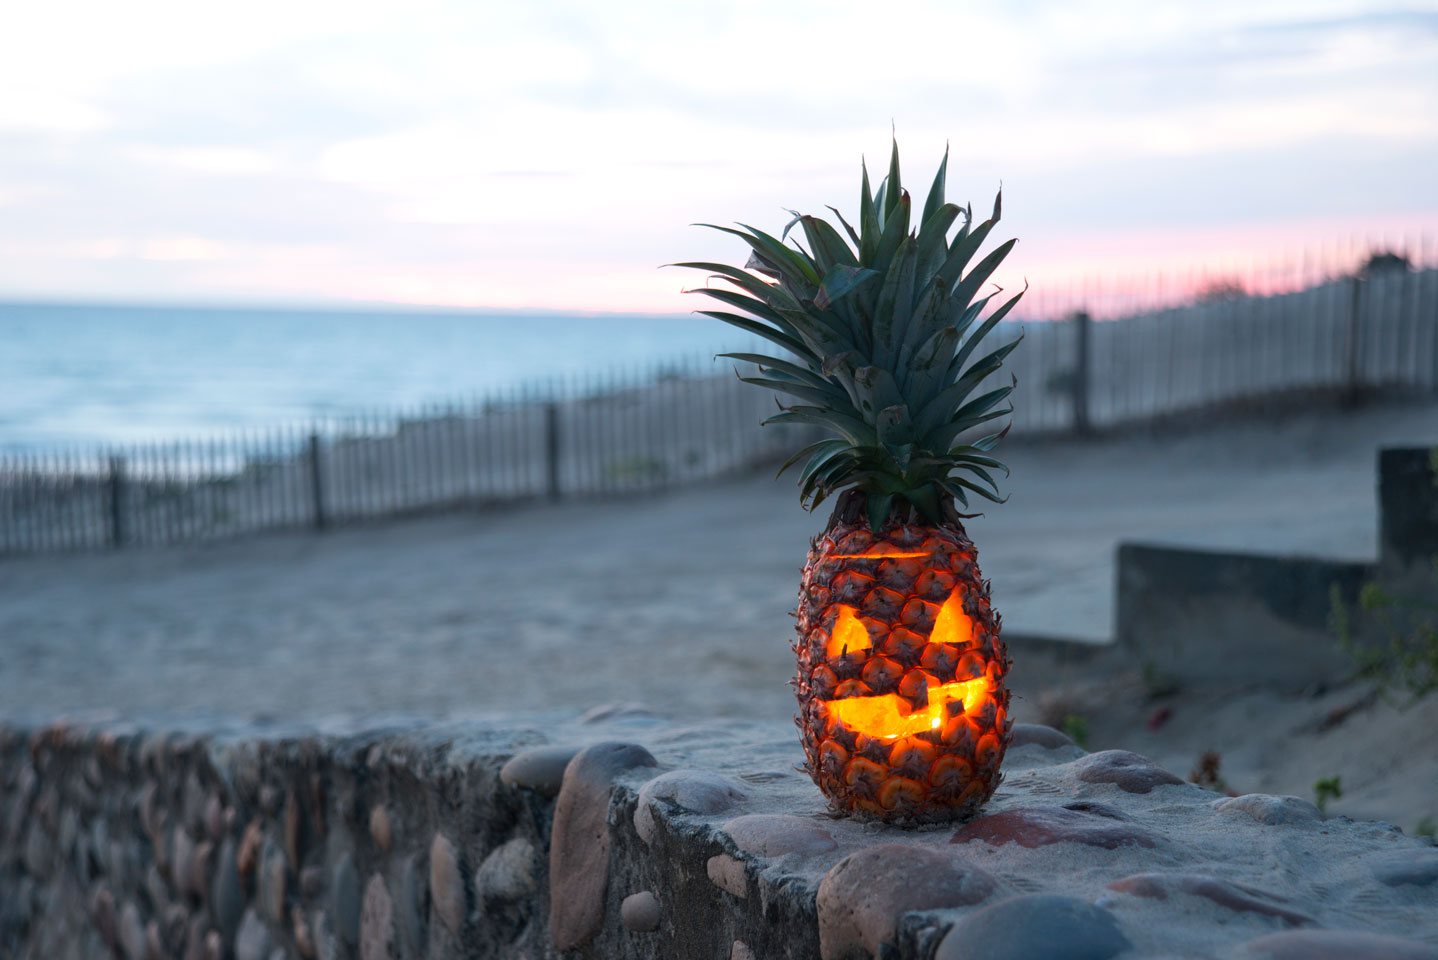 Pineapple jack-o'-lantern on a beach